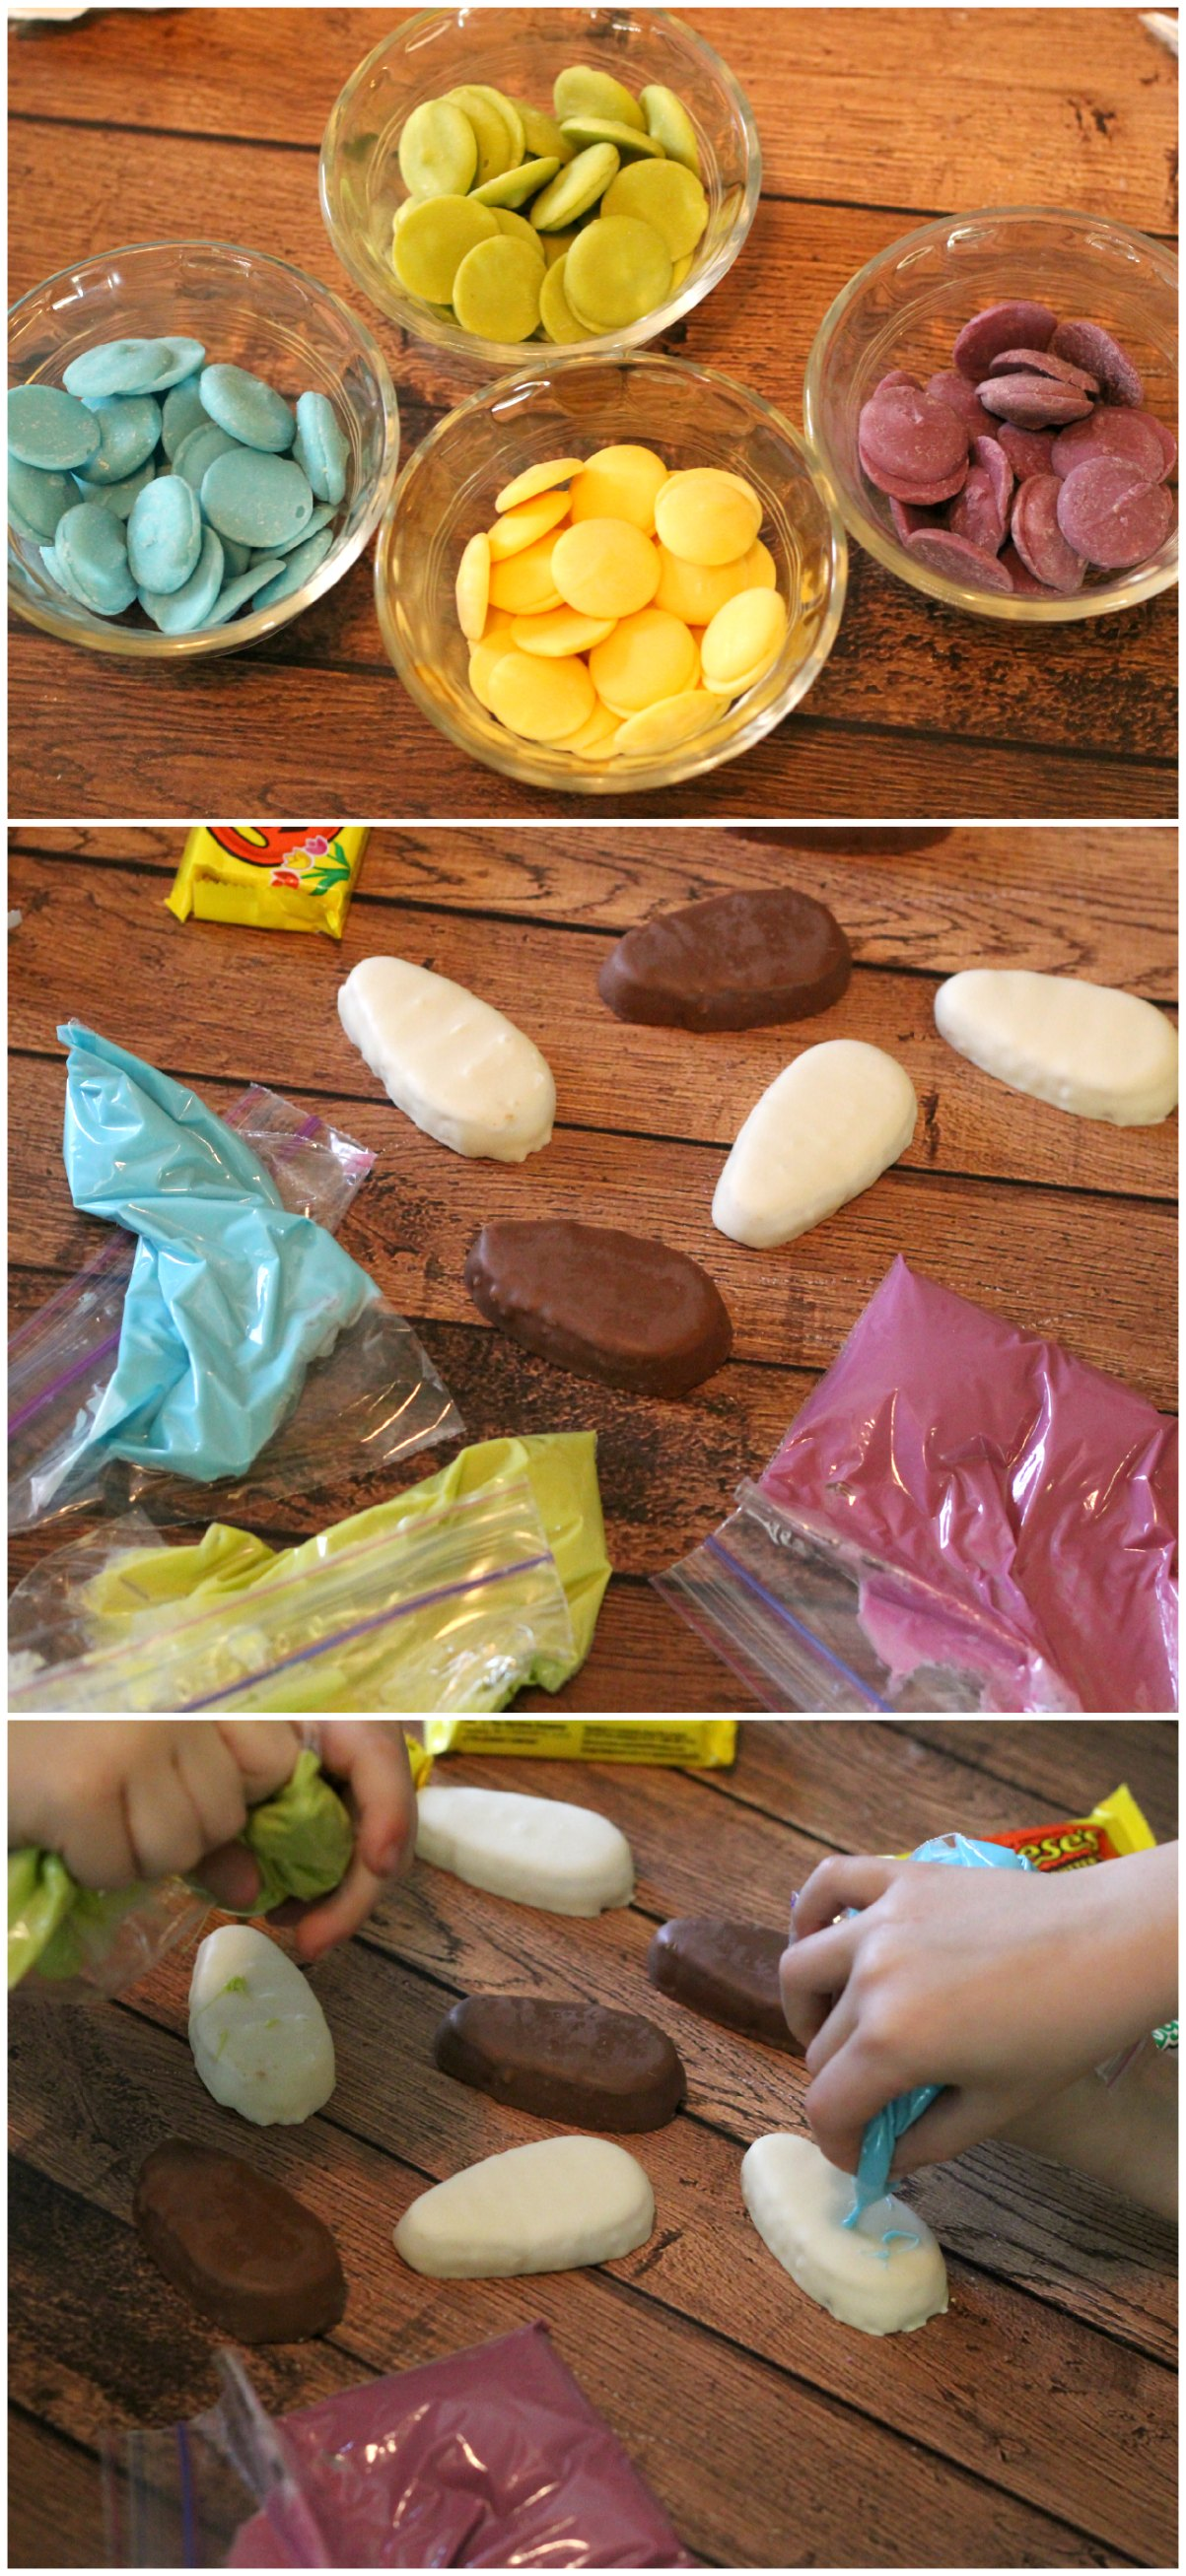 Decorating Chocolate Easter Eggs